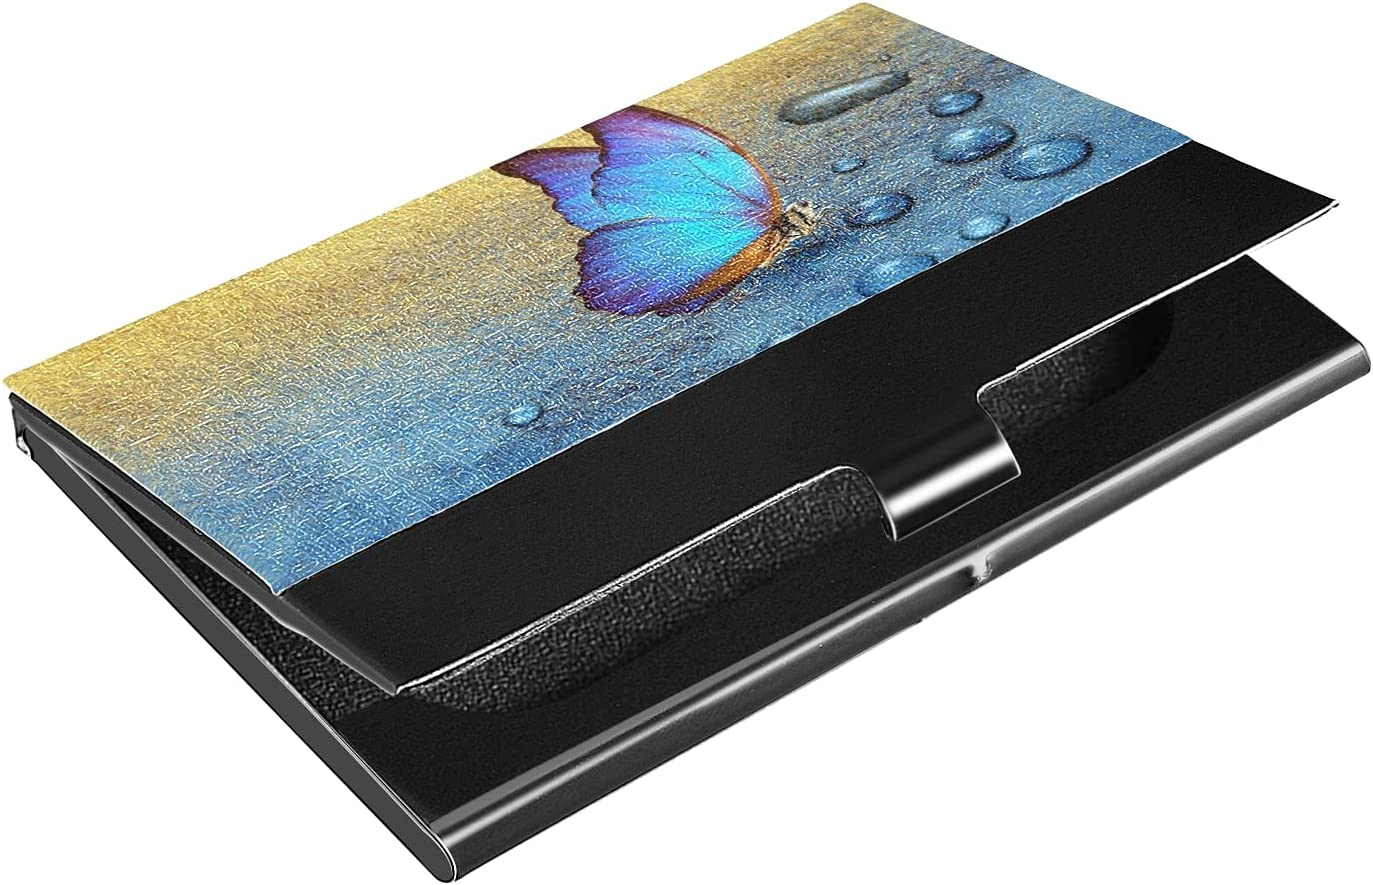 OTVEE Butterfly On Drops Business Card Holder Wallet Stainless Steel & Leather Pocket Business Card Case Organizer Slim Name Card ID Card Holders Credit Card Wallet Carrier Purse for Women Men